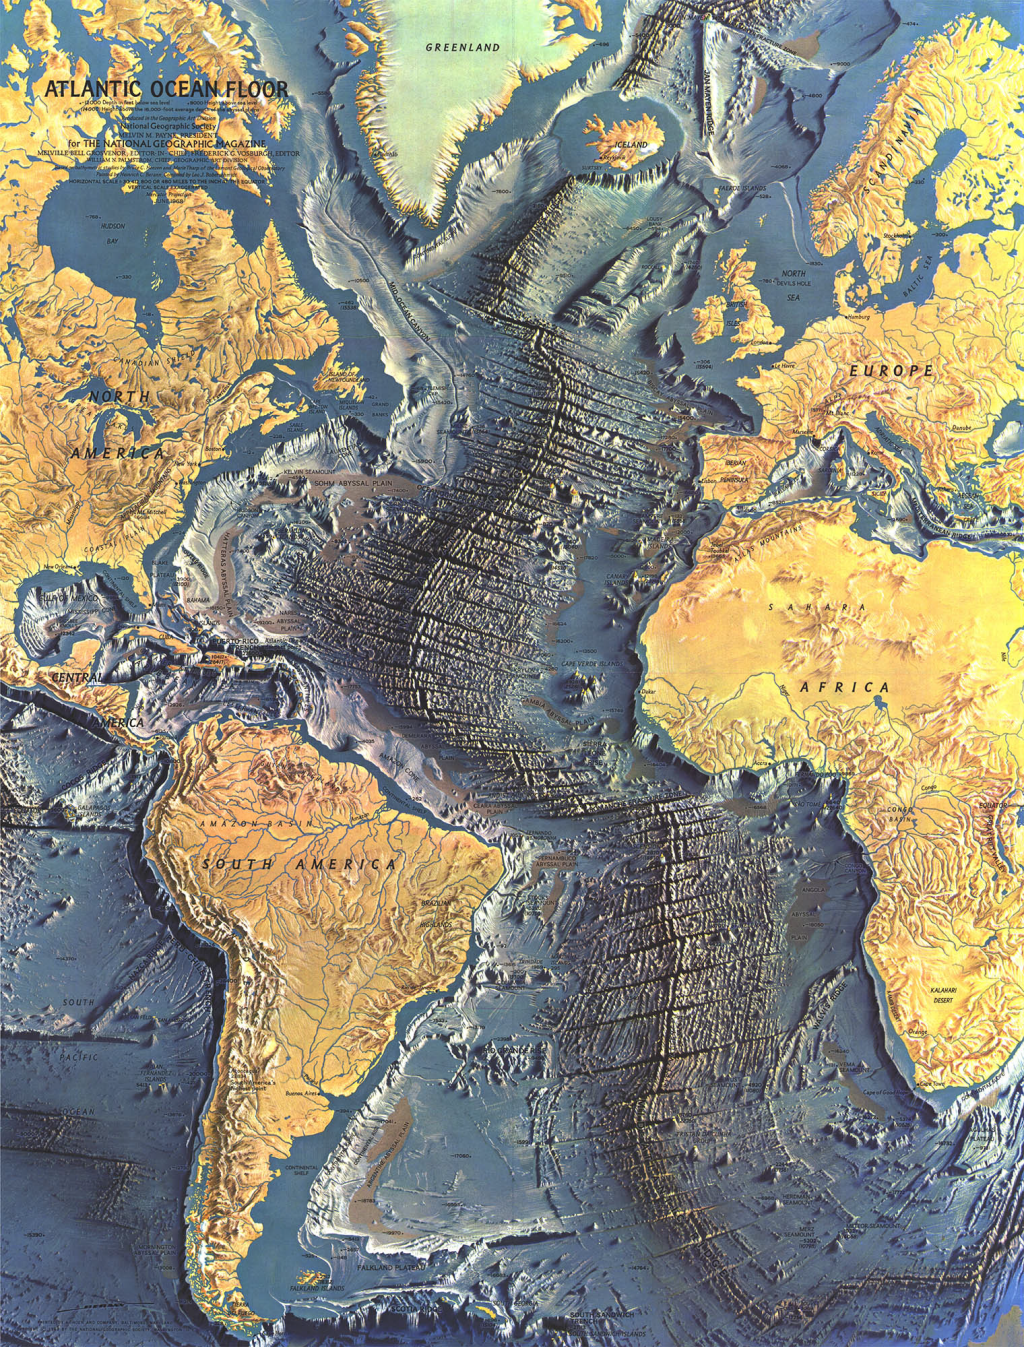 Ocean Floor Elevation Map : Mapcarte atlantic ocean floor by heinrich berann